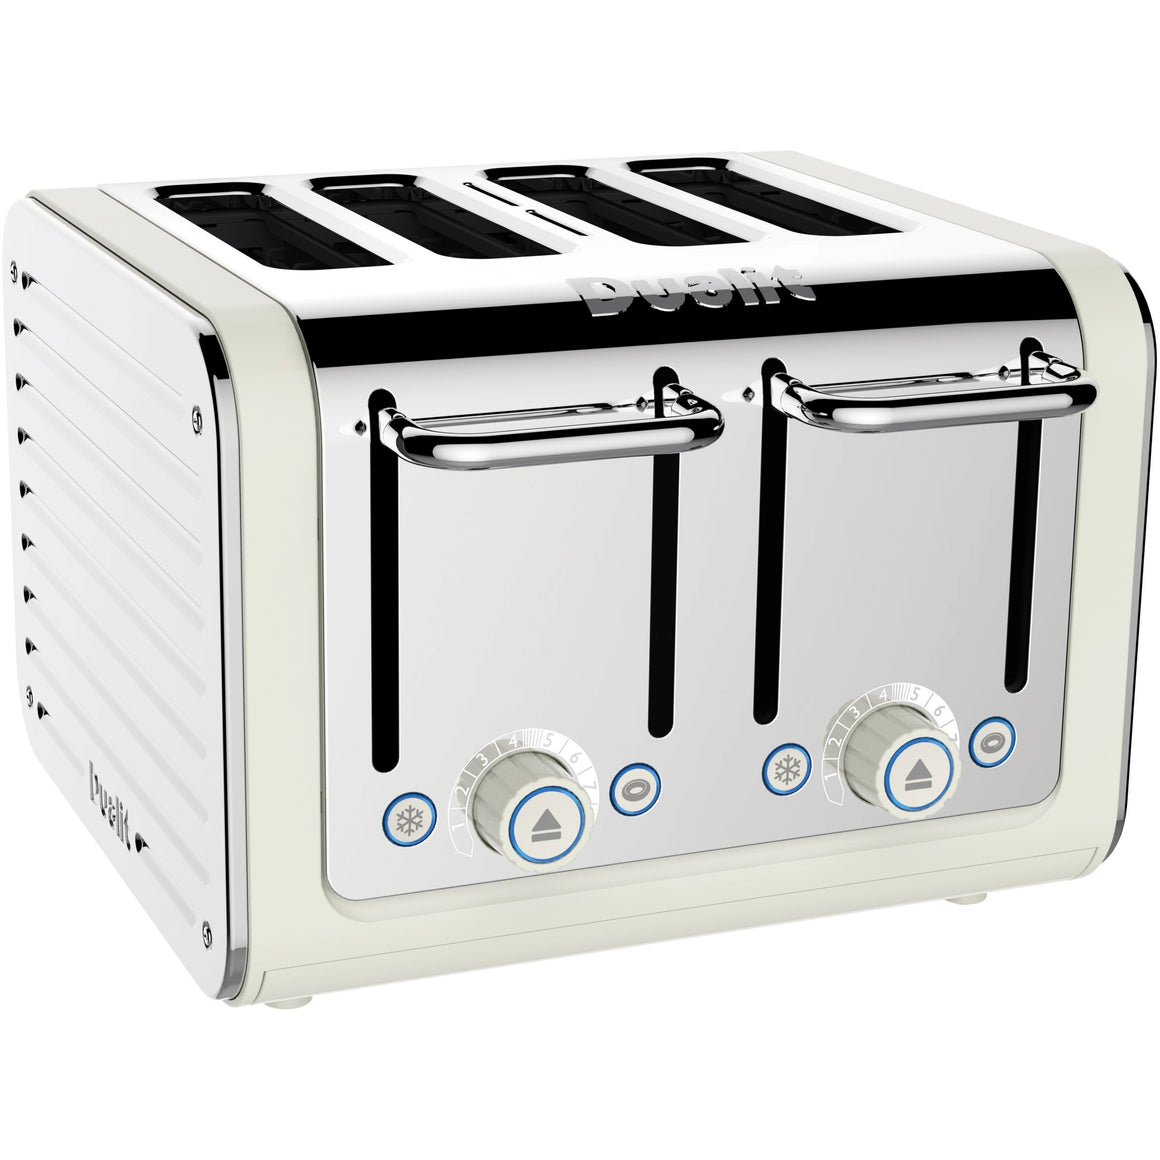 Dualit Architect 4 Slot Toaster - All Colours